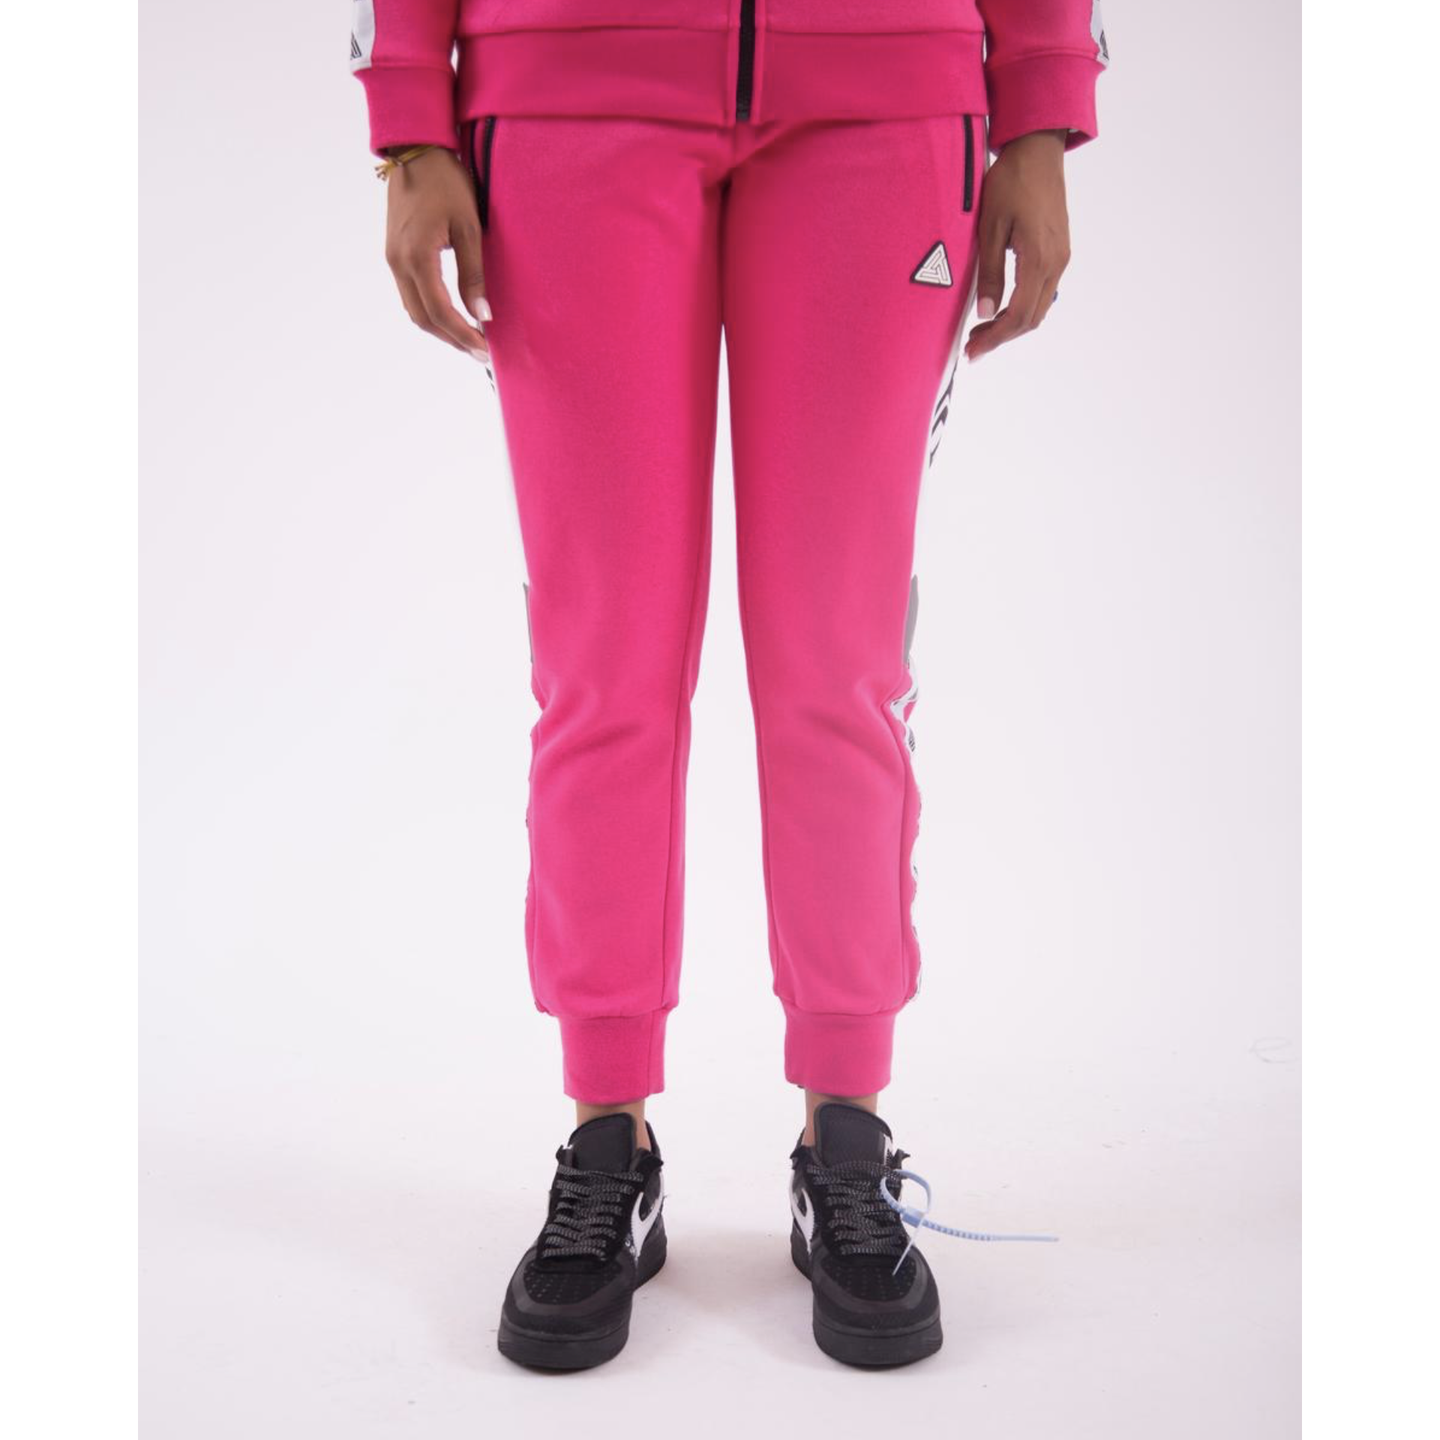 Women's Black Pyramid Logo Tape Pink Track Pants (YWG870106-PINK)